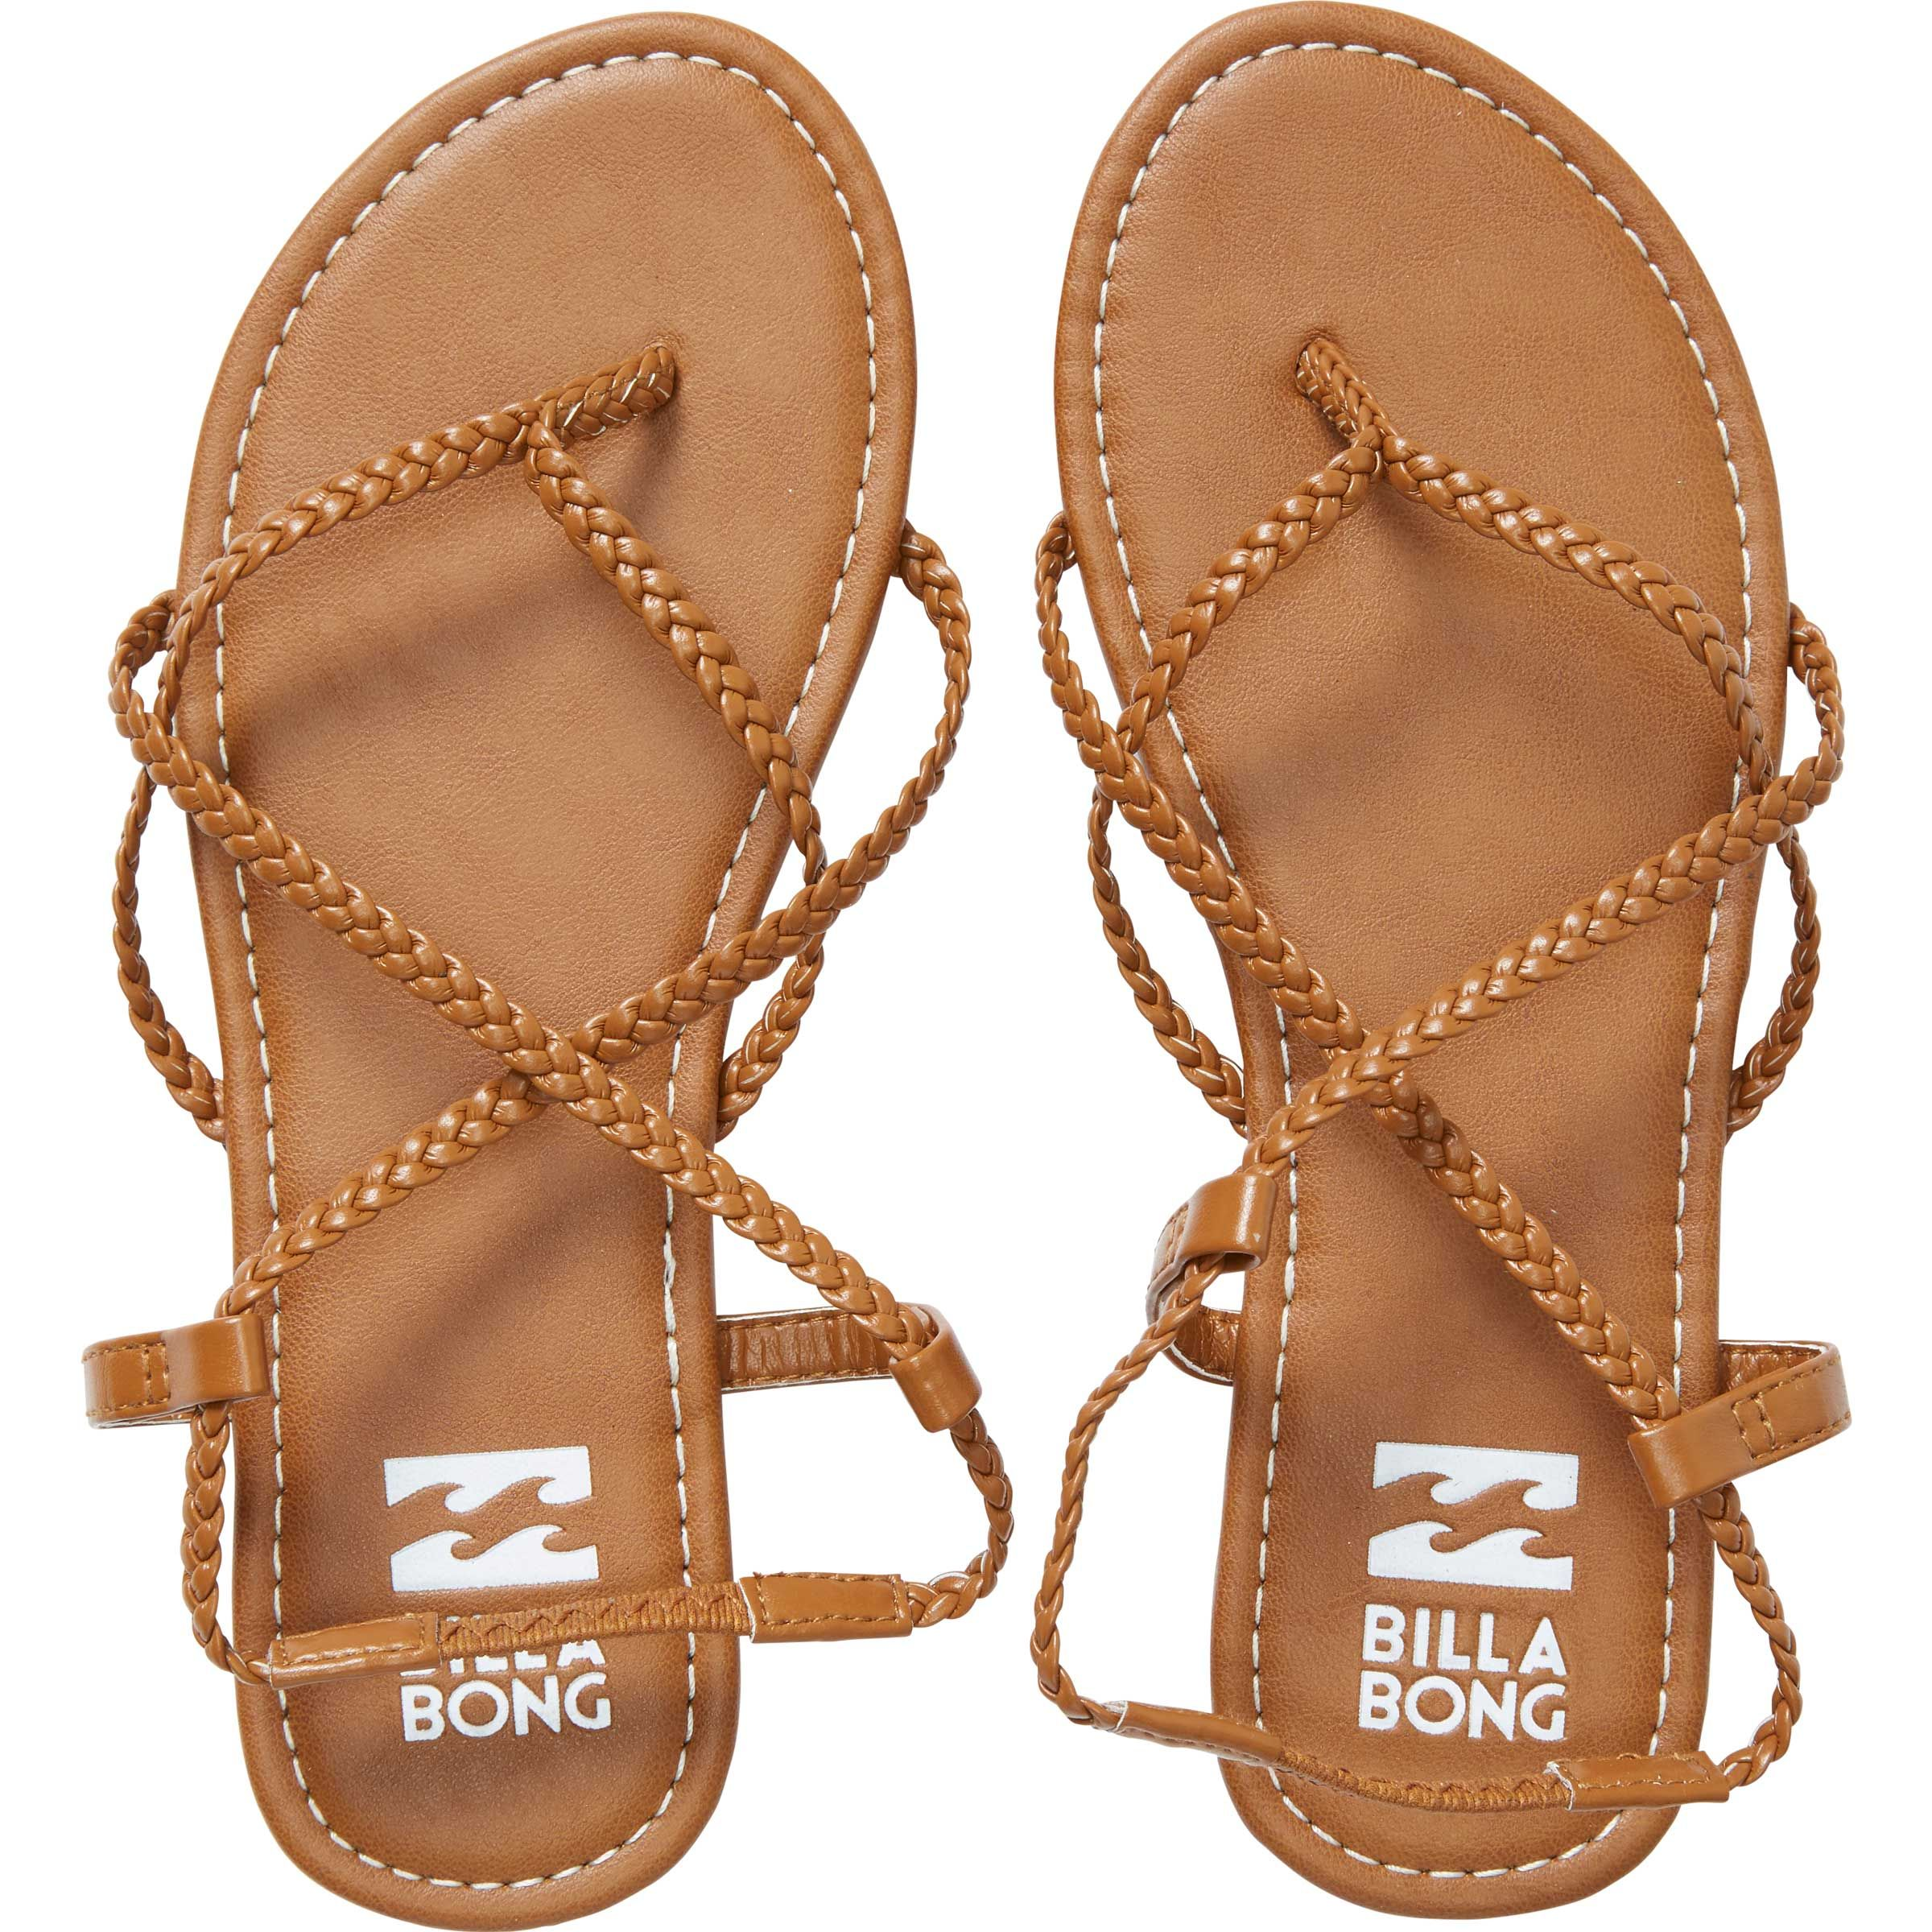 20c8cbbb773 Get free shipping at the Billabong online store. Cross step your way into  sandal season with low profile